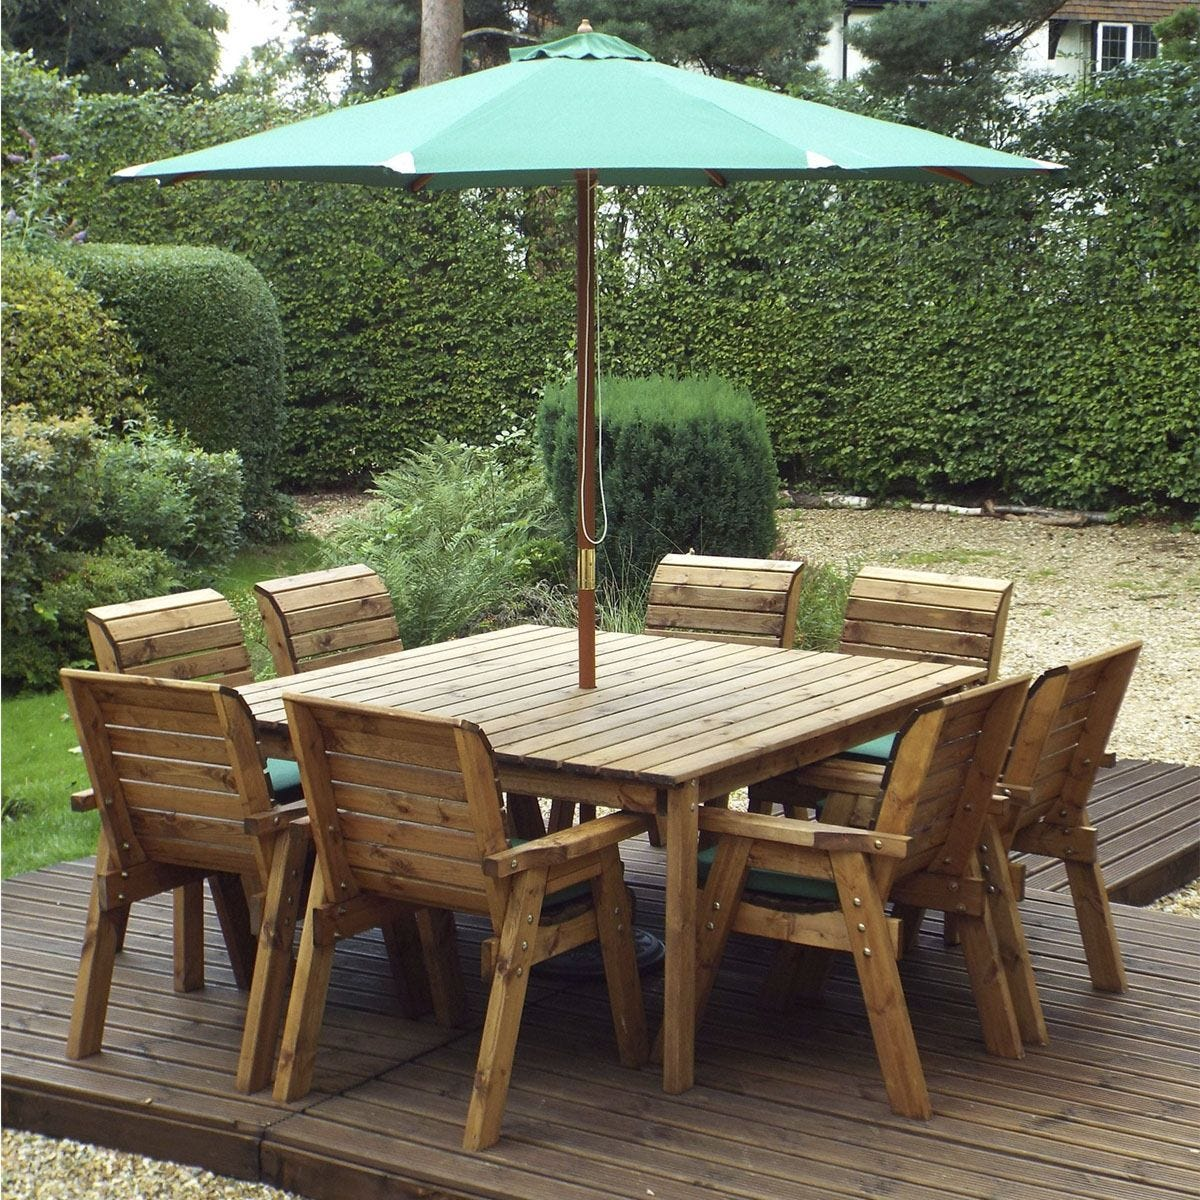 Charles Taylor 8 Seater Chair Square Table Set with Green Cushions, Storage Bag, Parasol and Base